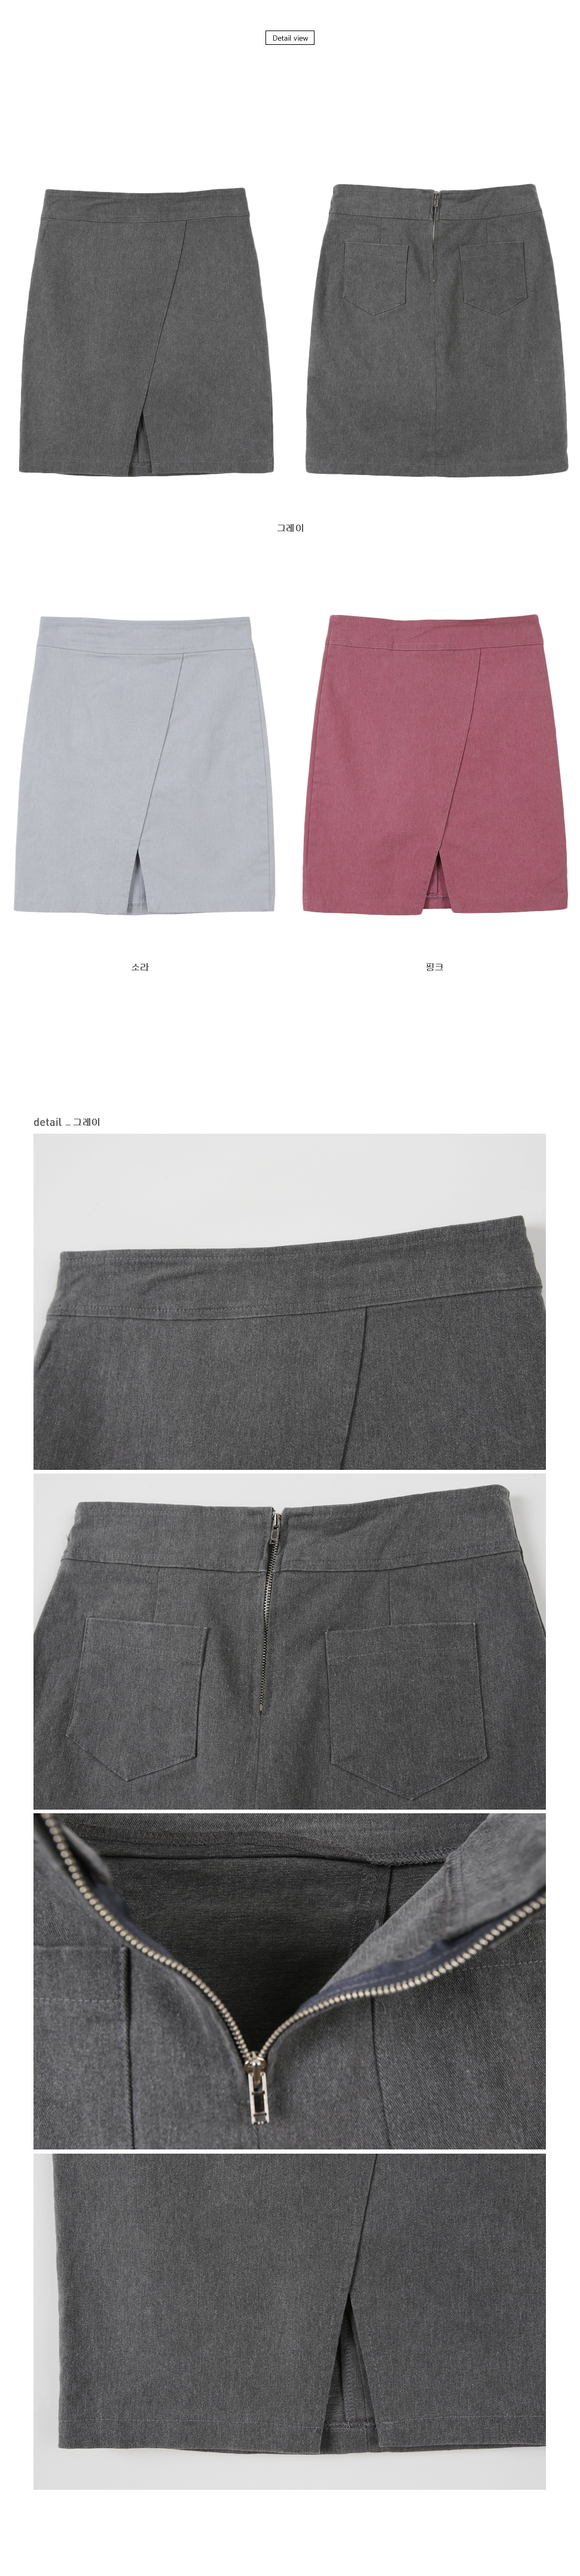 Jude incision skirt